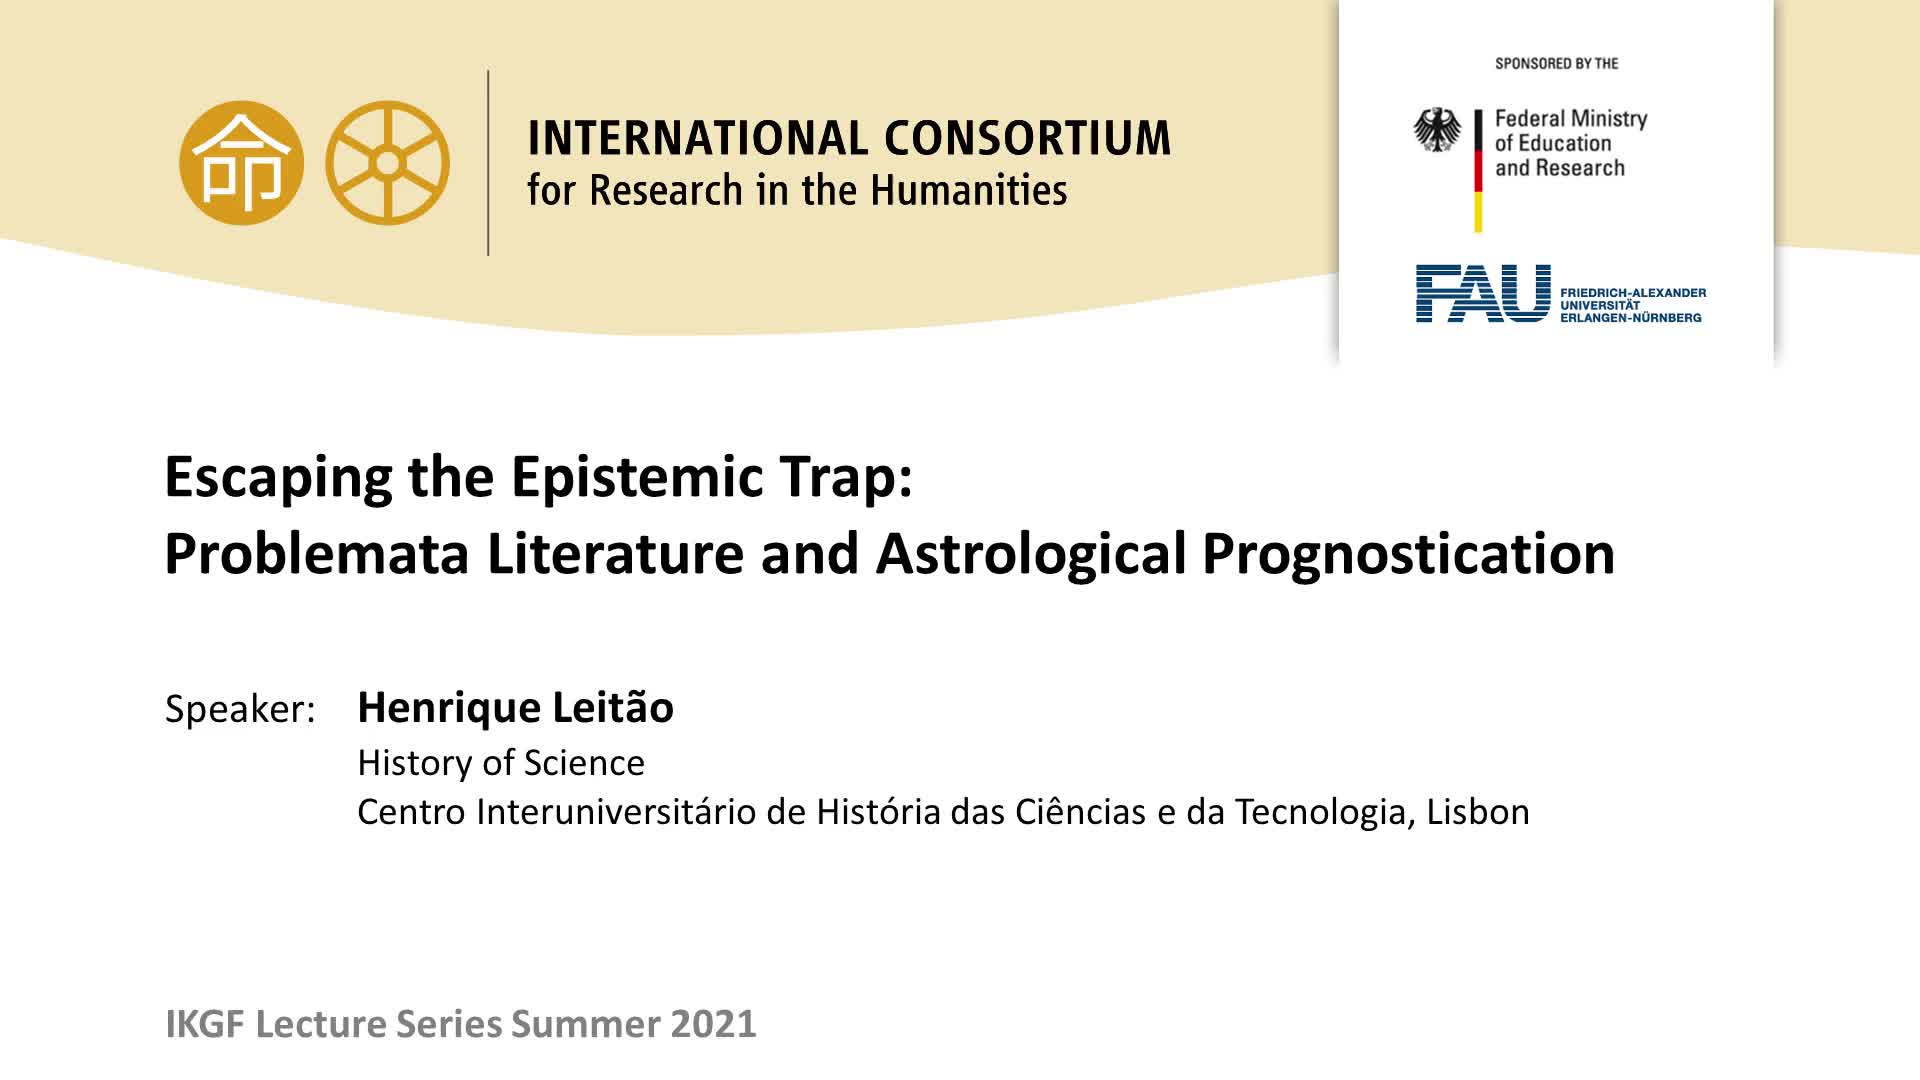 Escaping the Epistemic Trap: Problemata Literature and Astrological Prognostication preview image